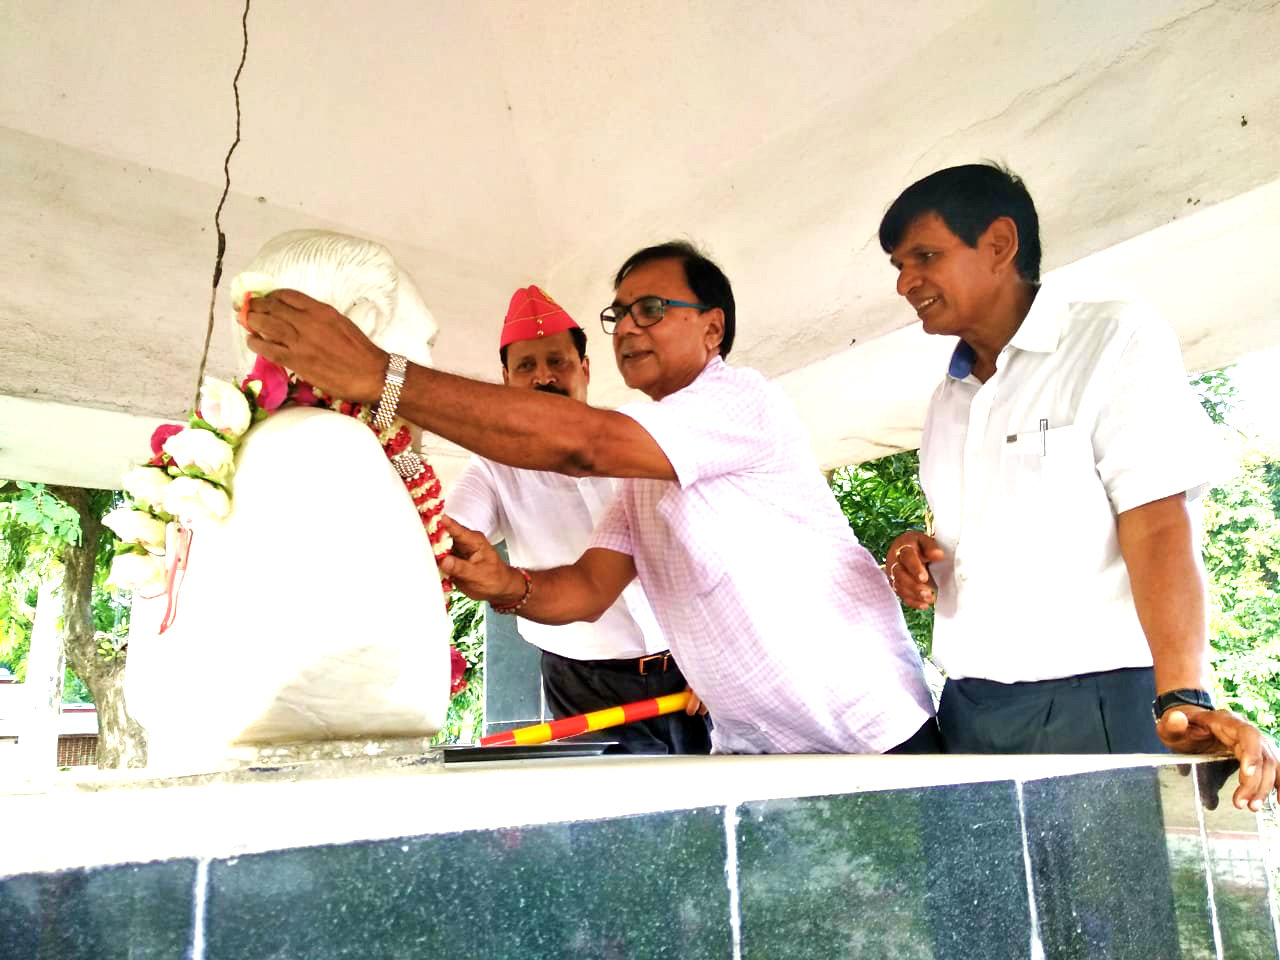 Samajsevi Dr.Madhepuri with Registrar Colonel Neeraj & Dr.Arun Kumar (H.O.D. Zoology P.G.) paying tribute to the statue of Dr.M.P.Yadav , the former V.C. of B.N.M.U. in the University Campus, Madhepura.